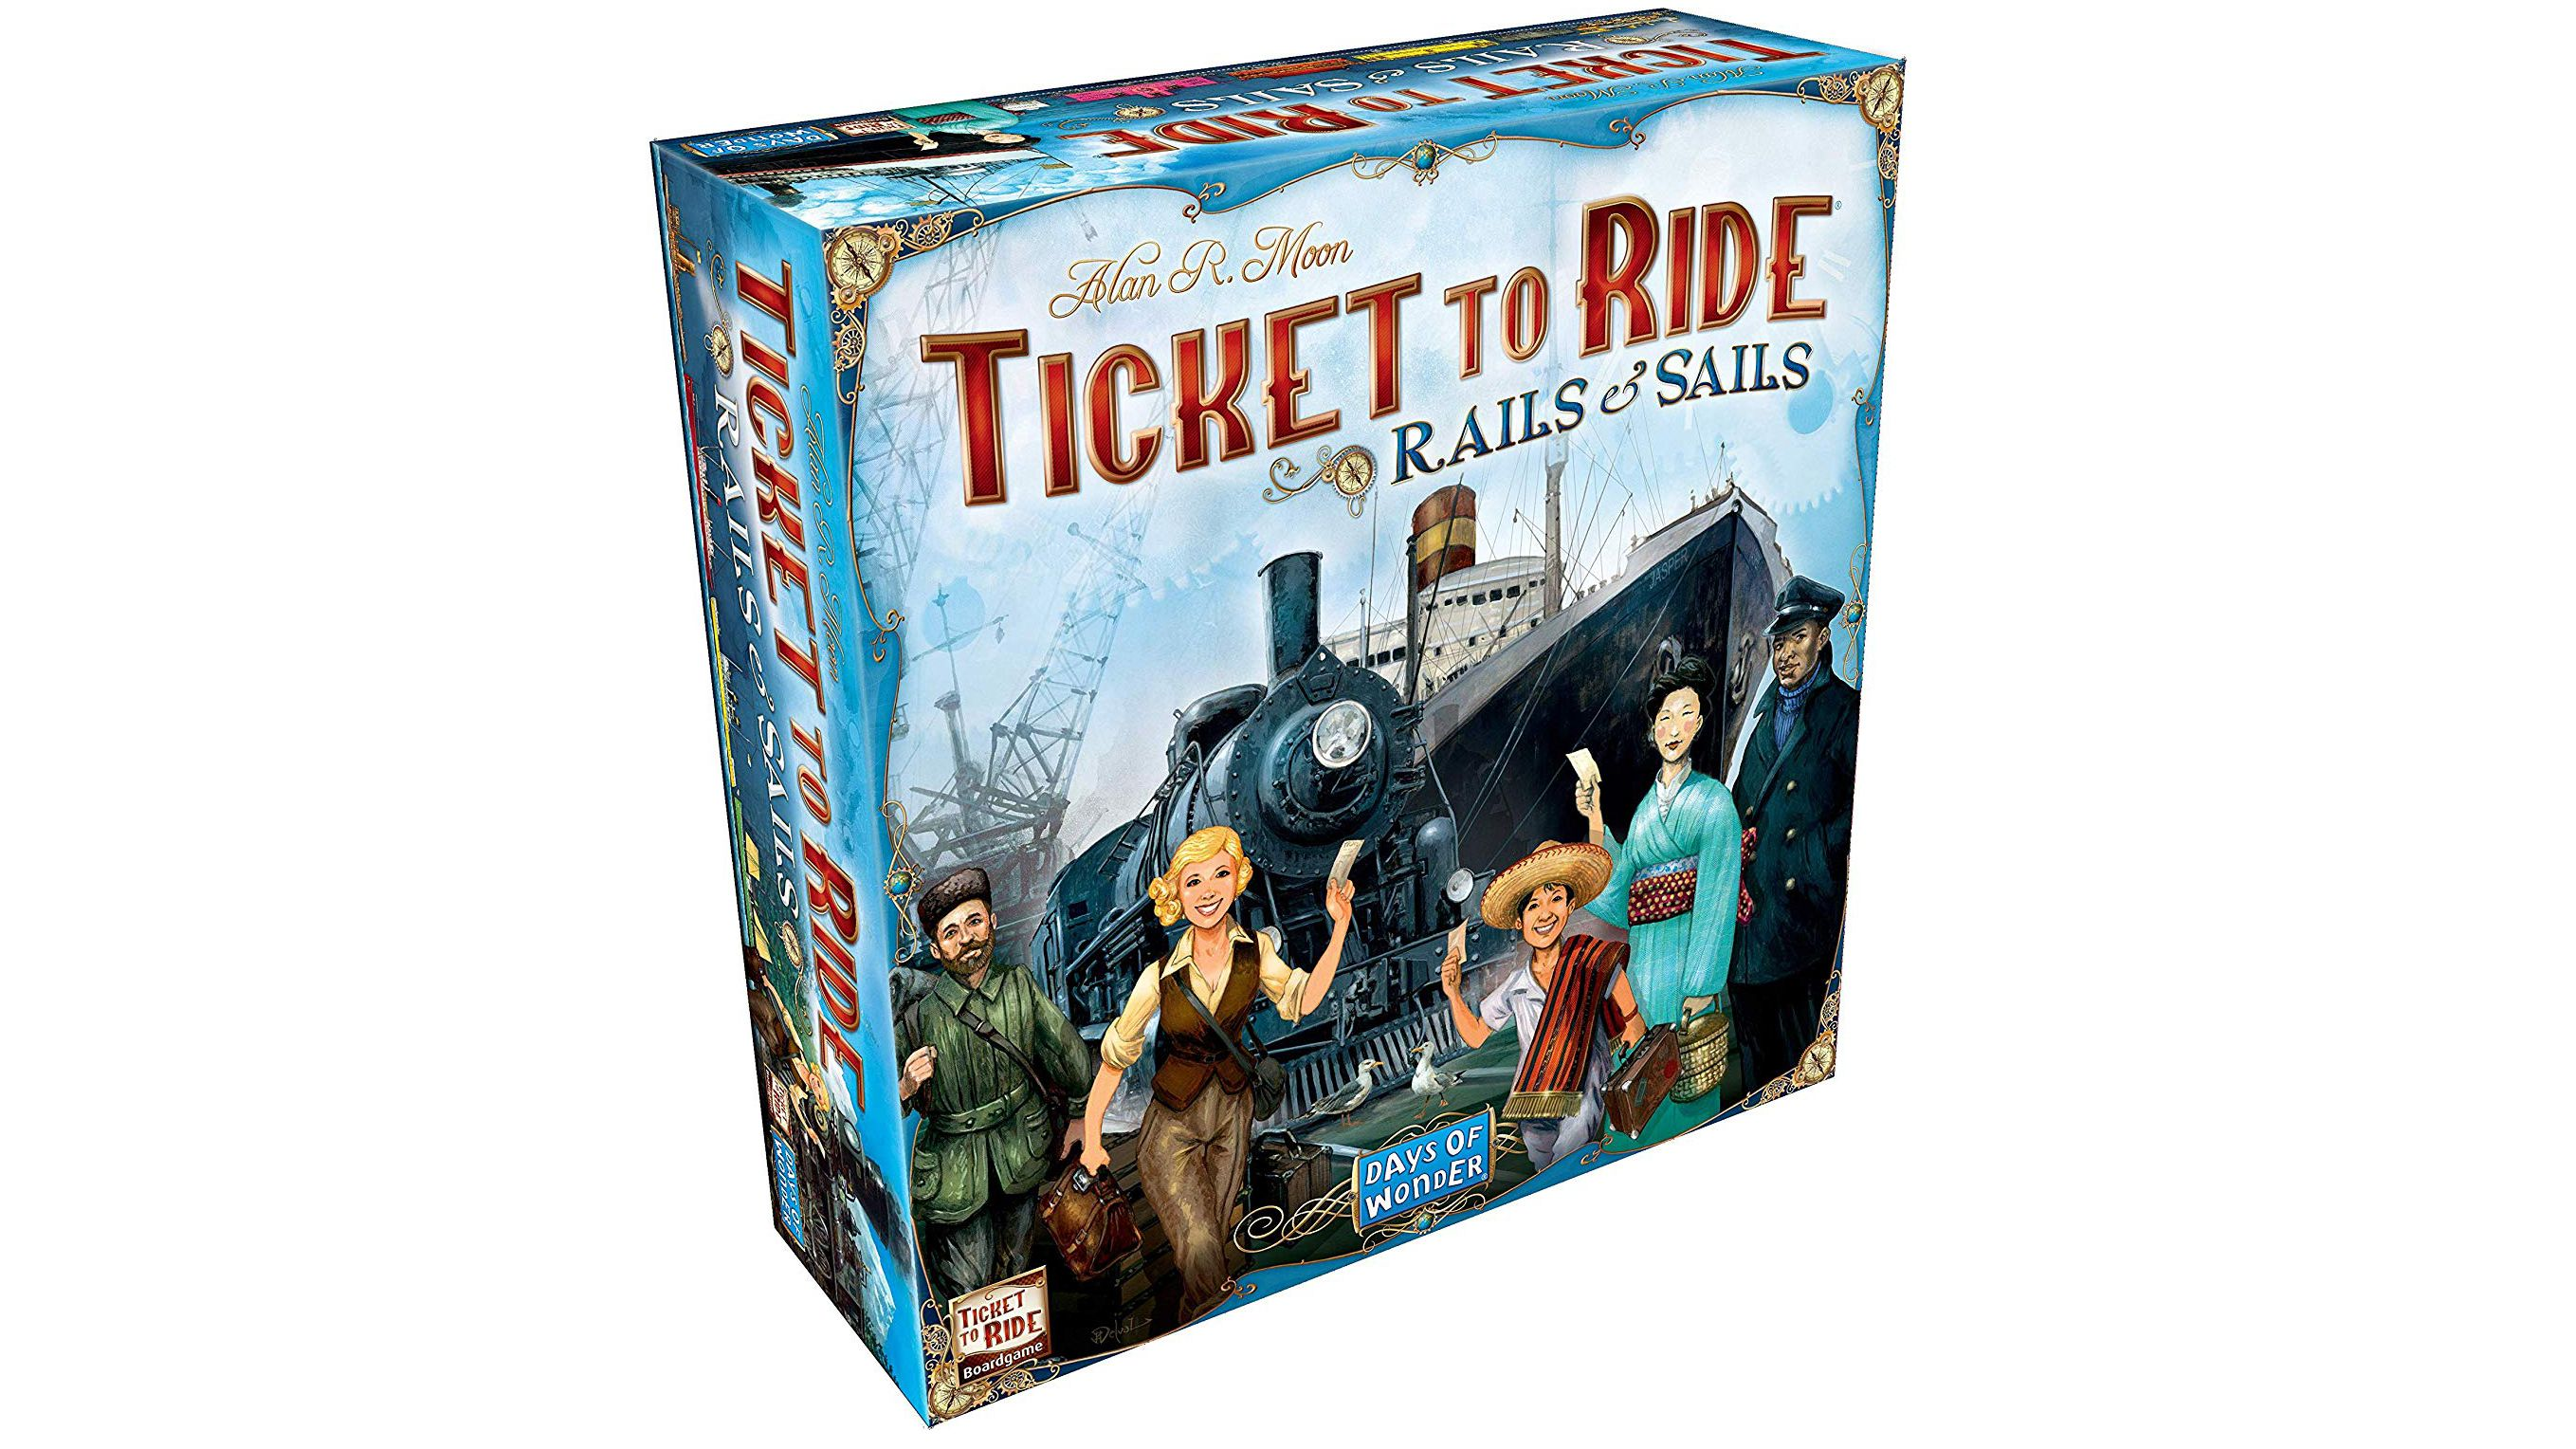 Hunting for the best board games to keep you and your